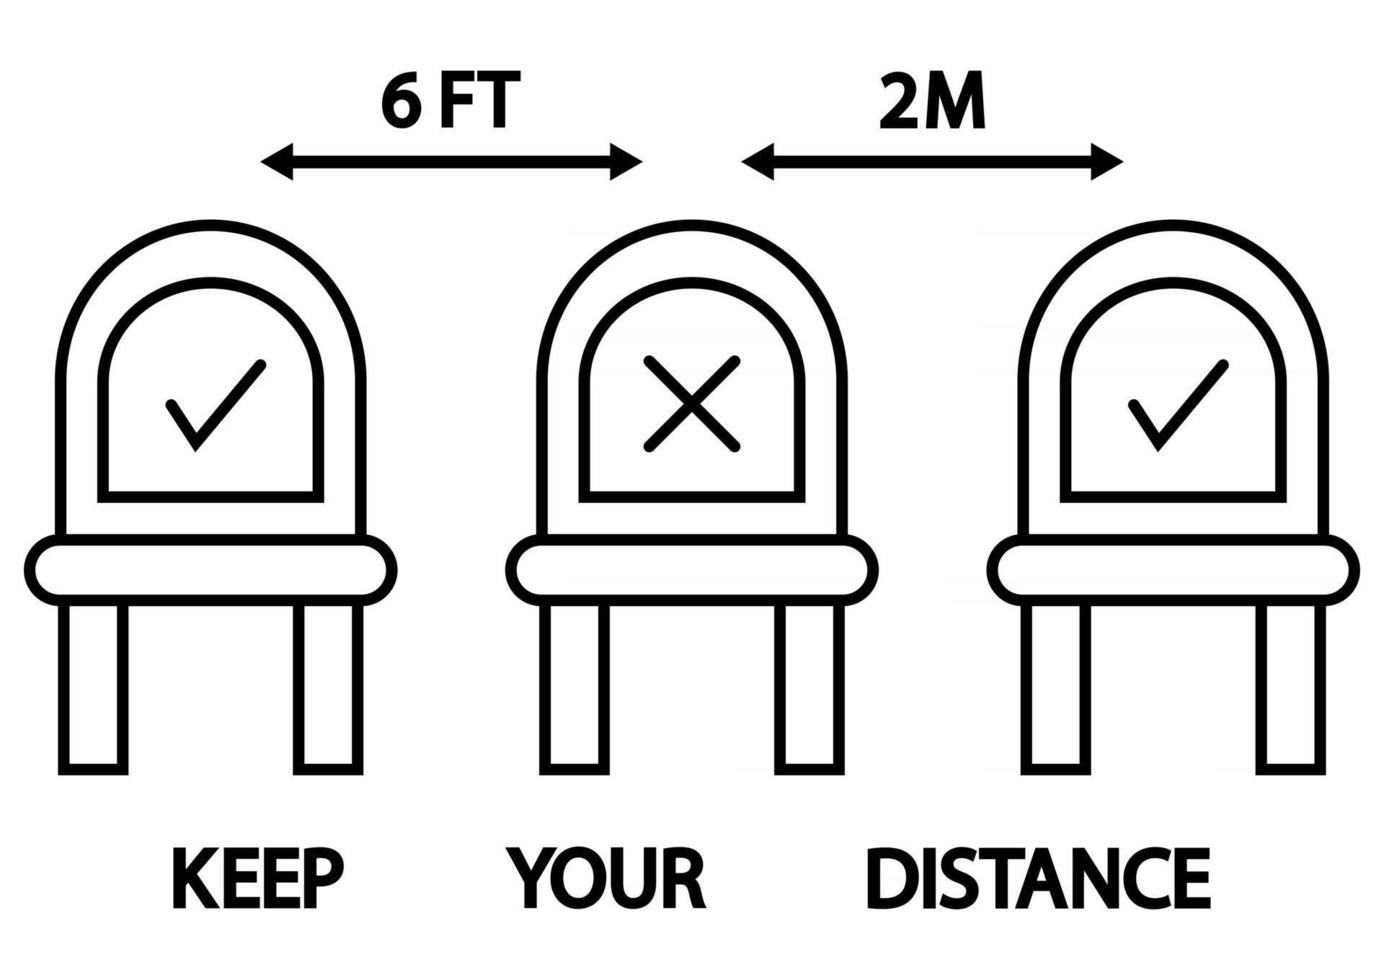 Do not sit here. Signage for restaurants and public places or transport. Social distancing, physical distancing sitting in a public chair, outline icon. Editable stroke. Keep your distance vector